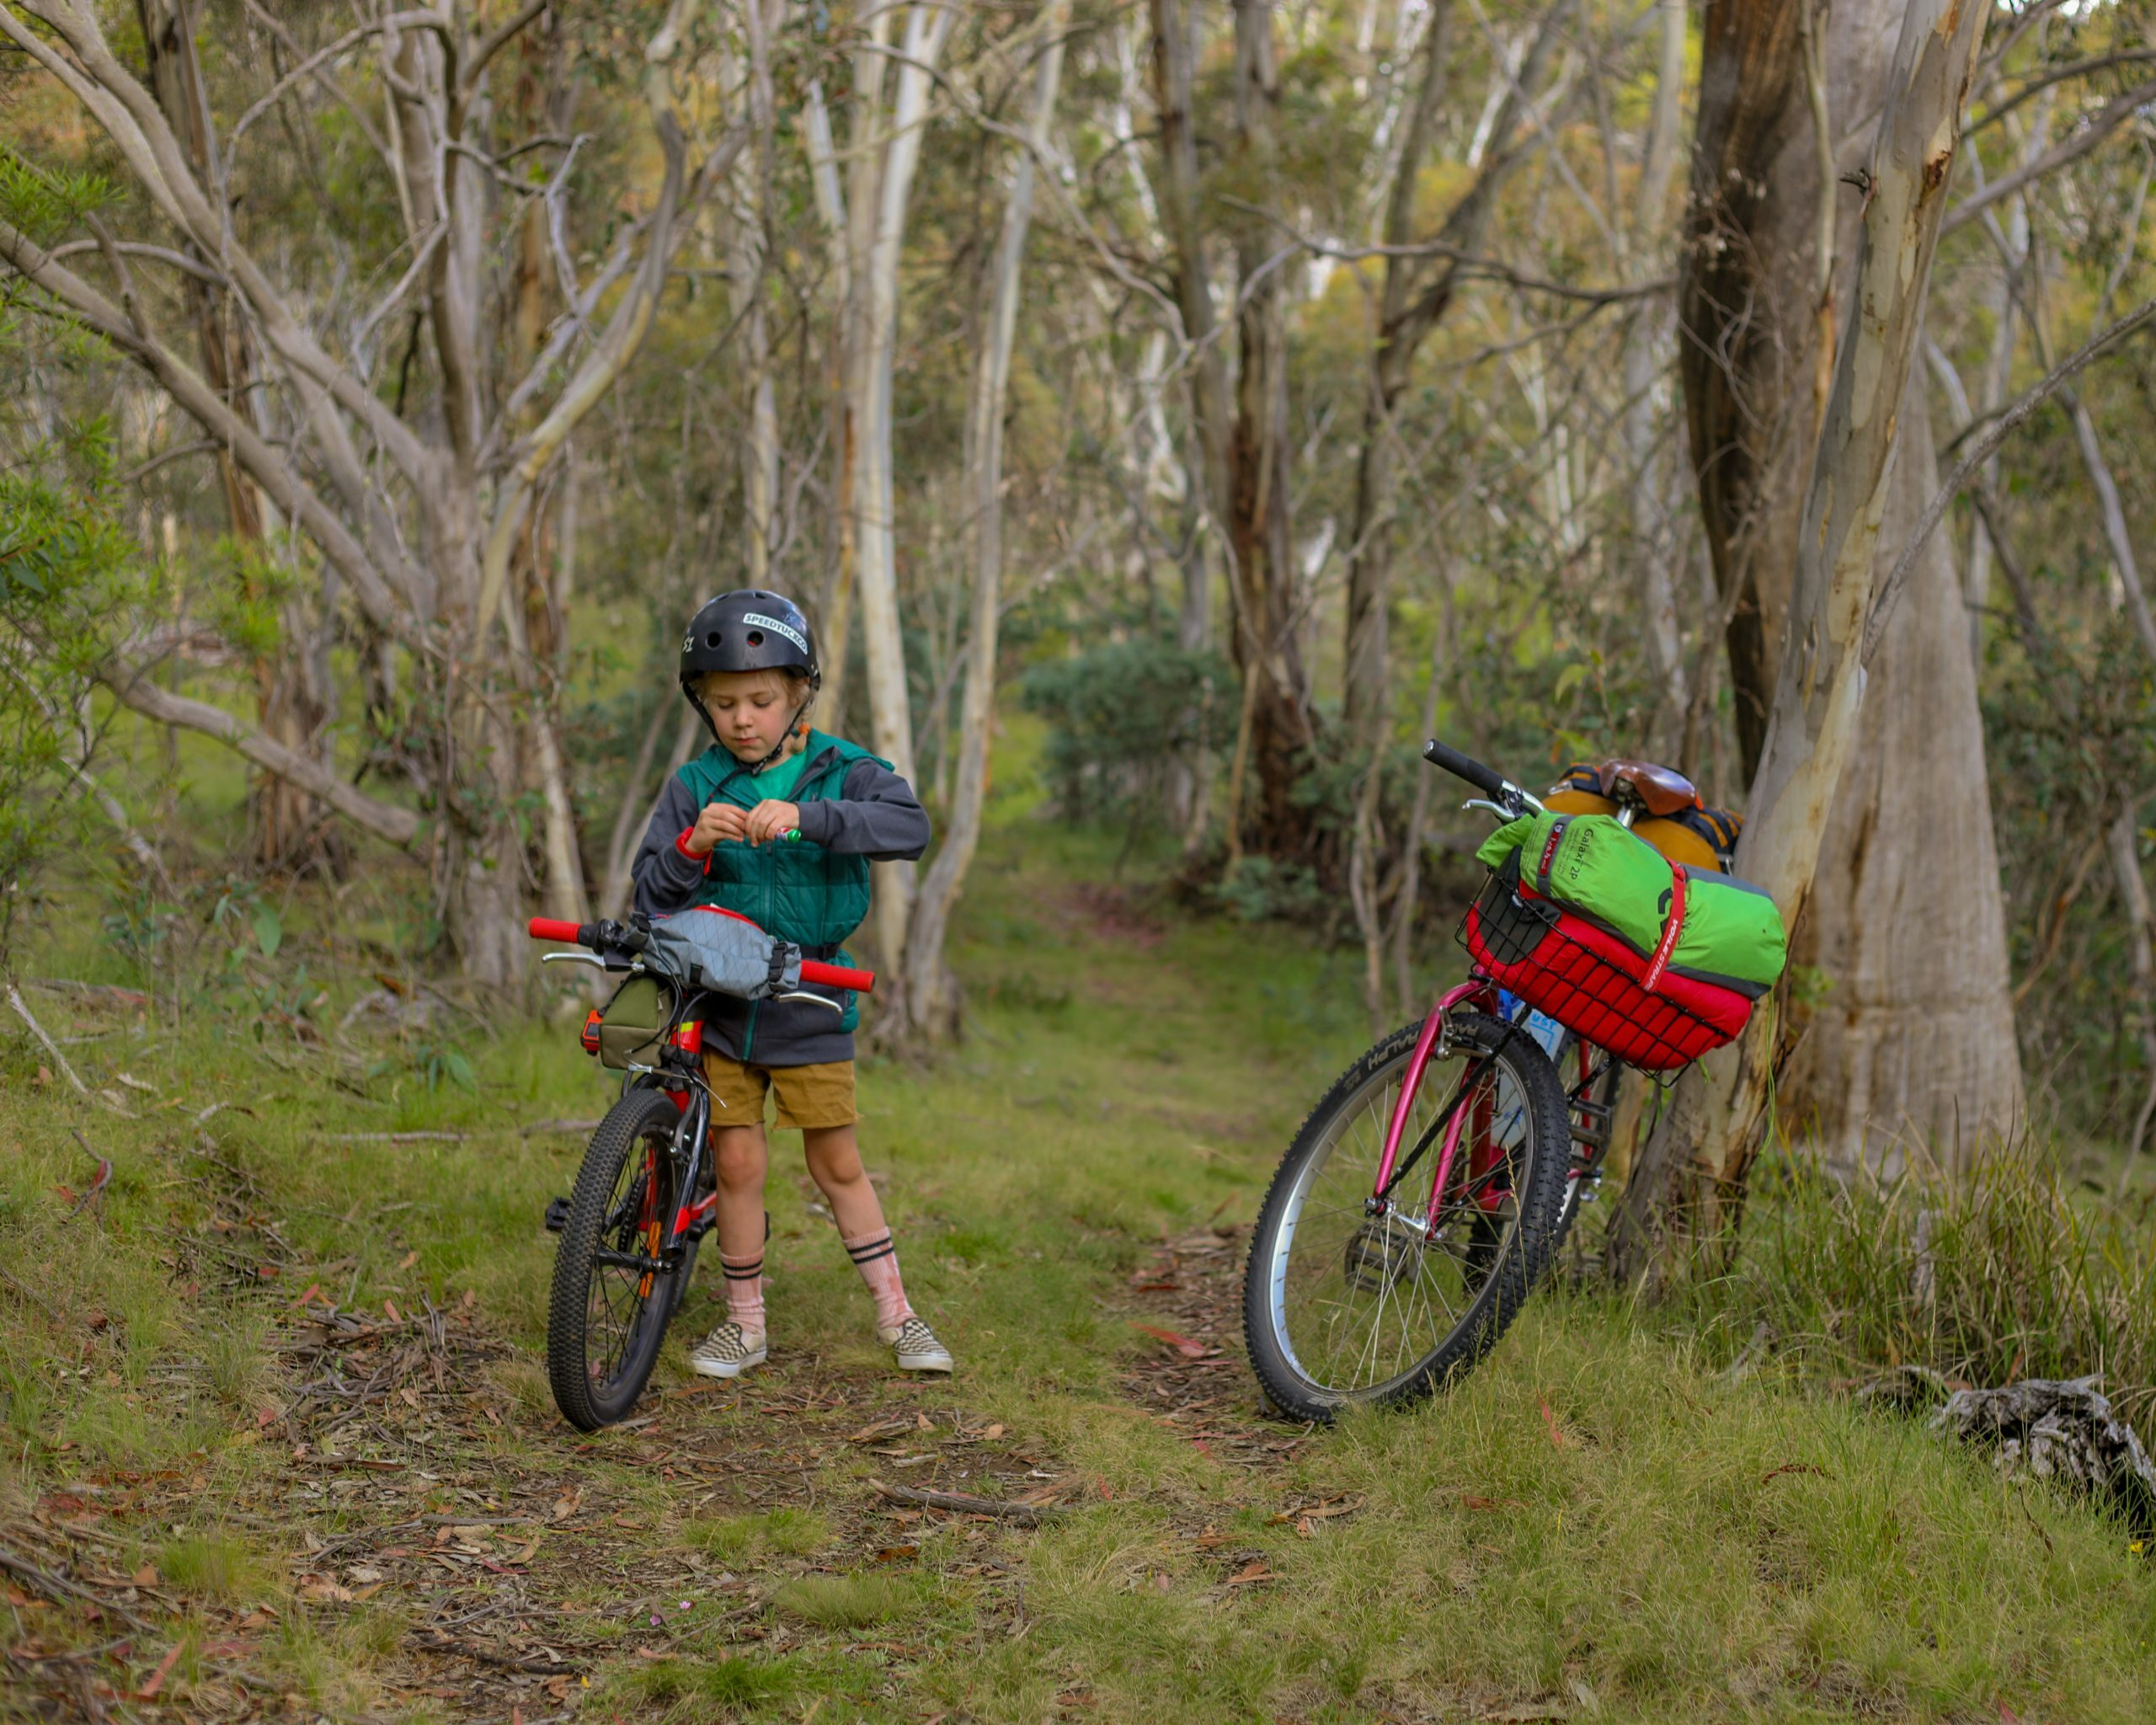 Bikepacking with a six year old, stopping for lollies